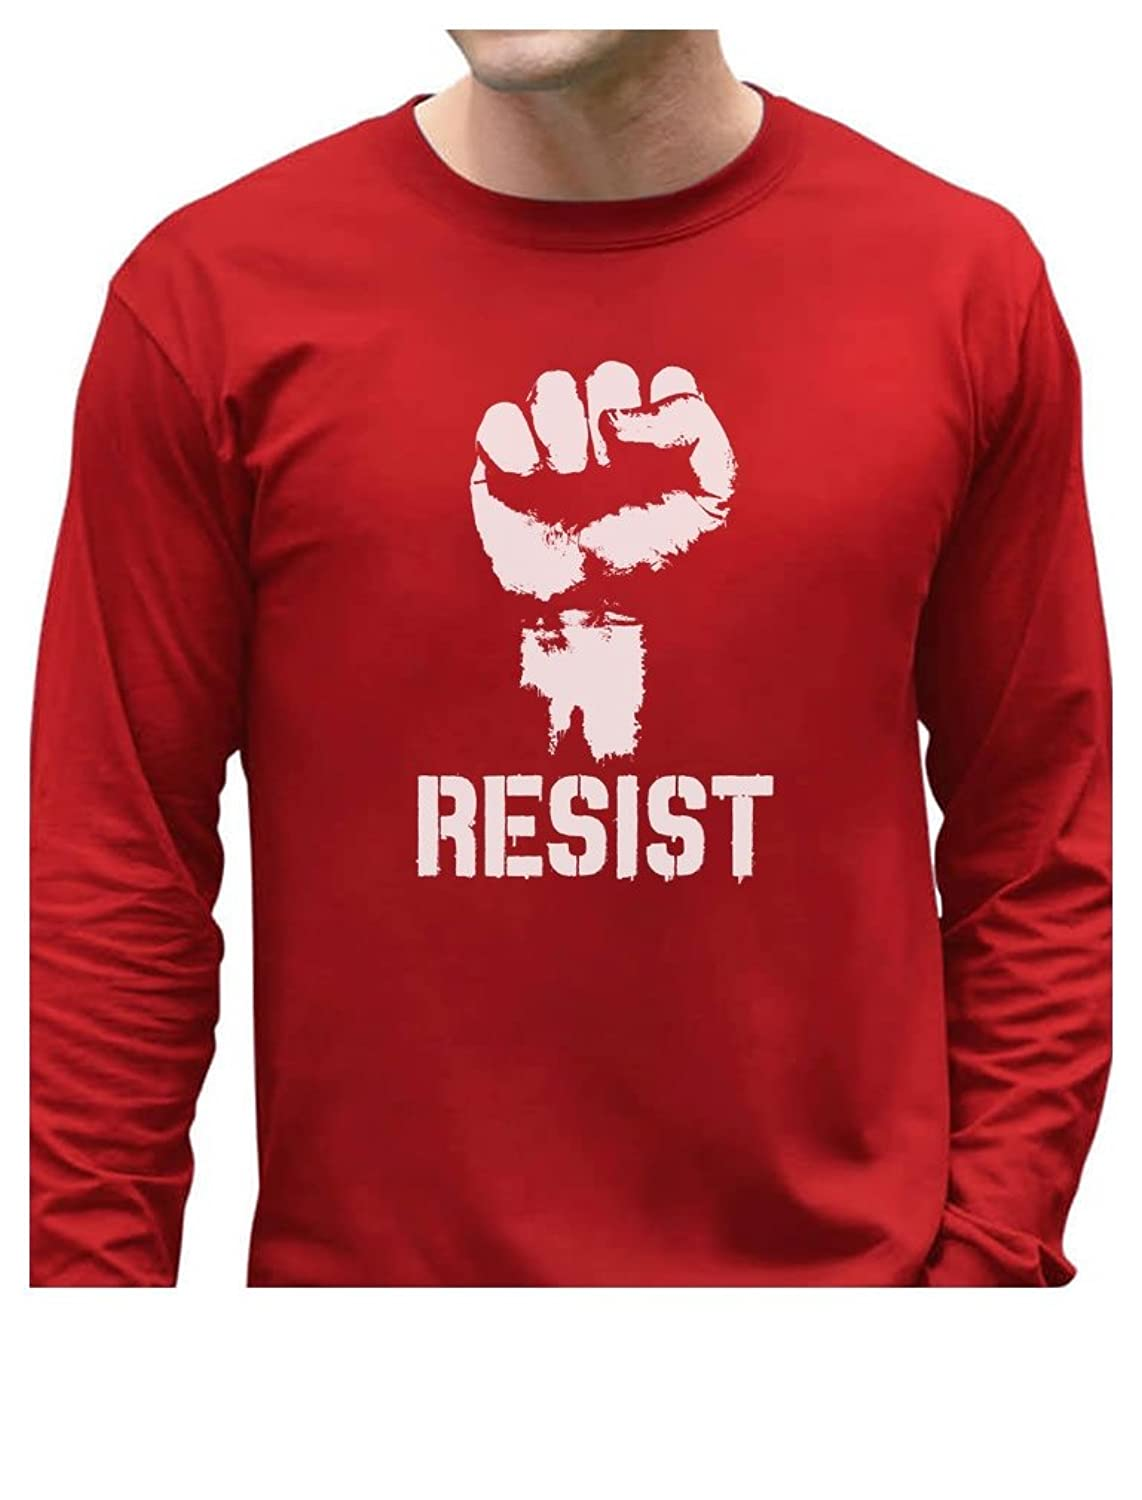 Resist Political Anti Protest Power Fist Anti Trump Long Sleeve T-Shirt